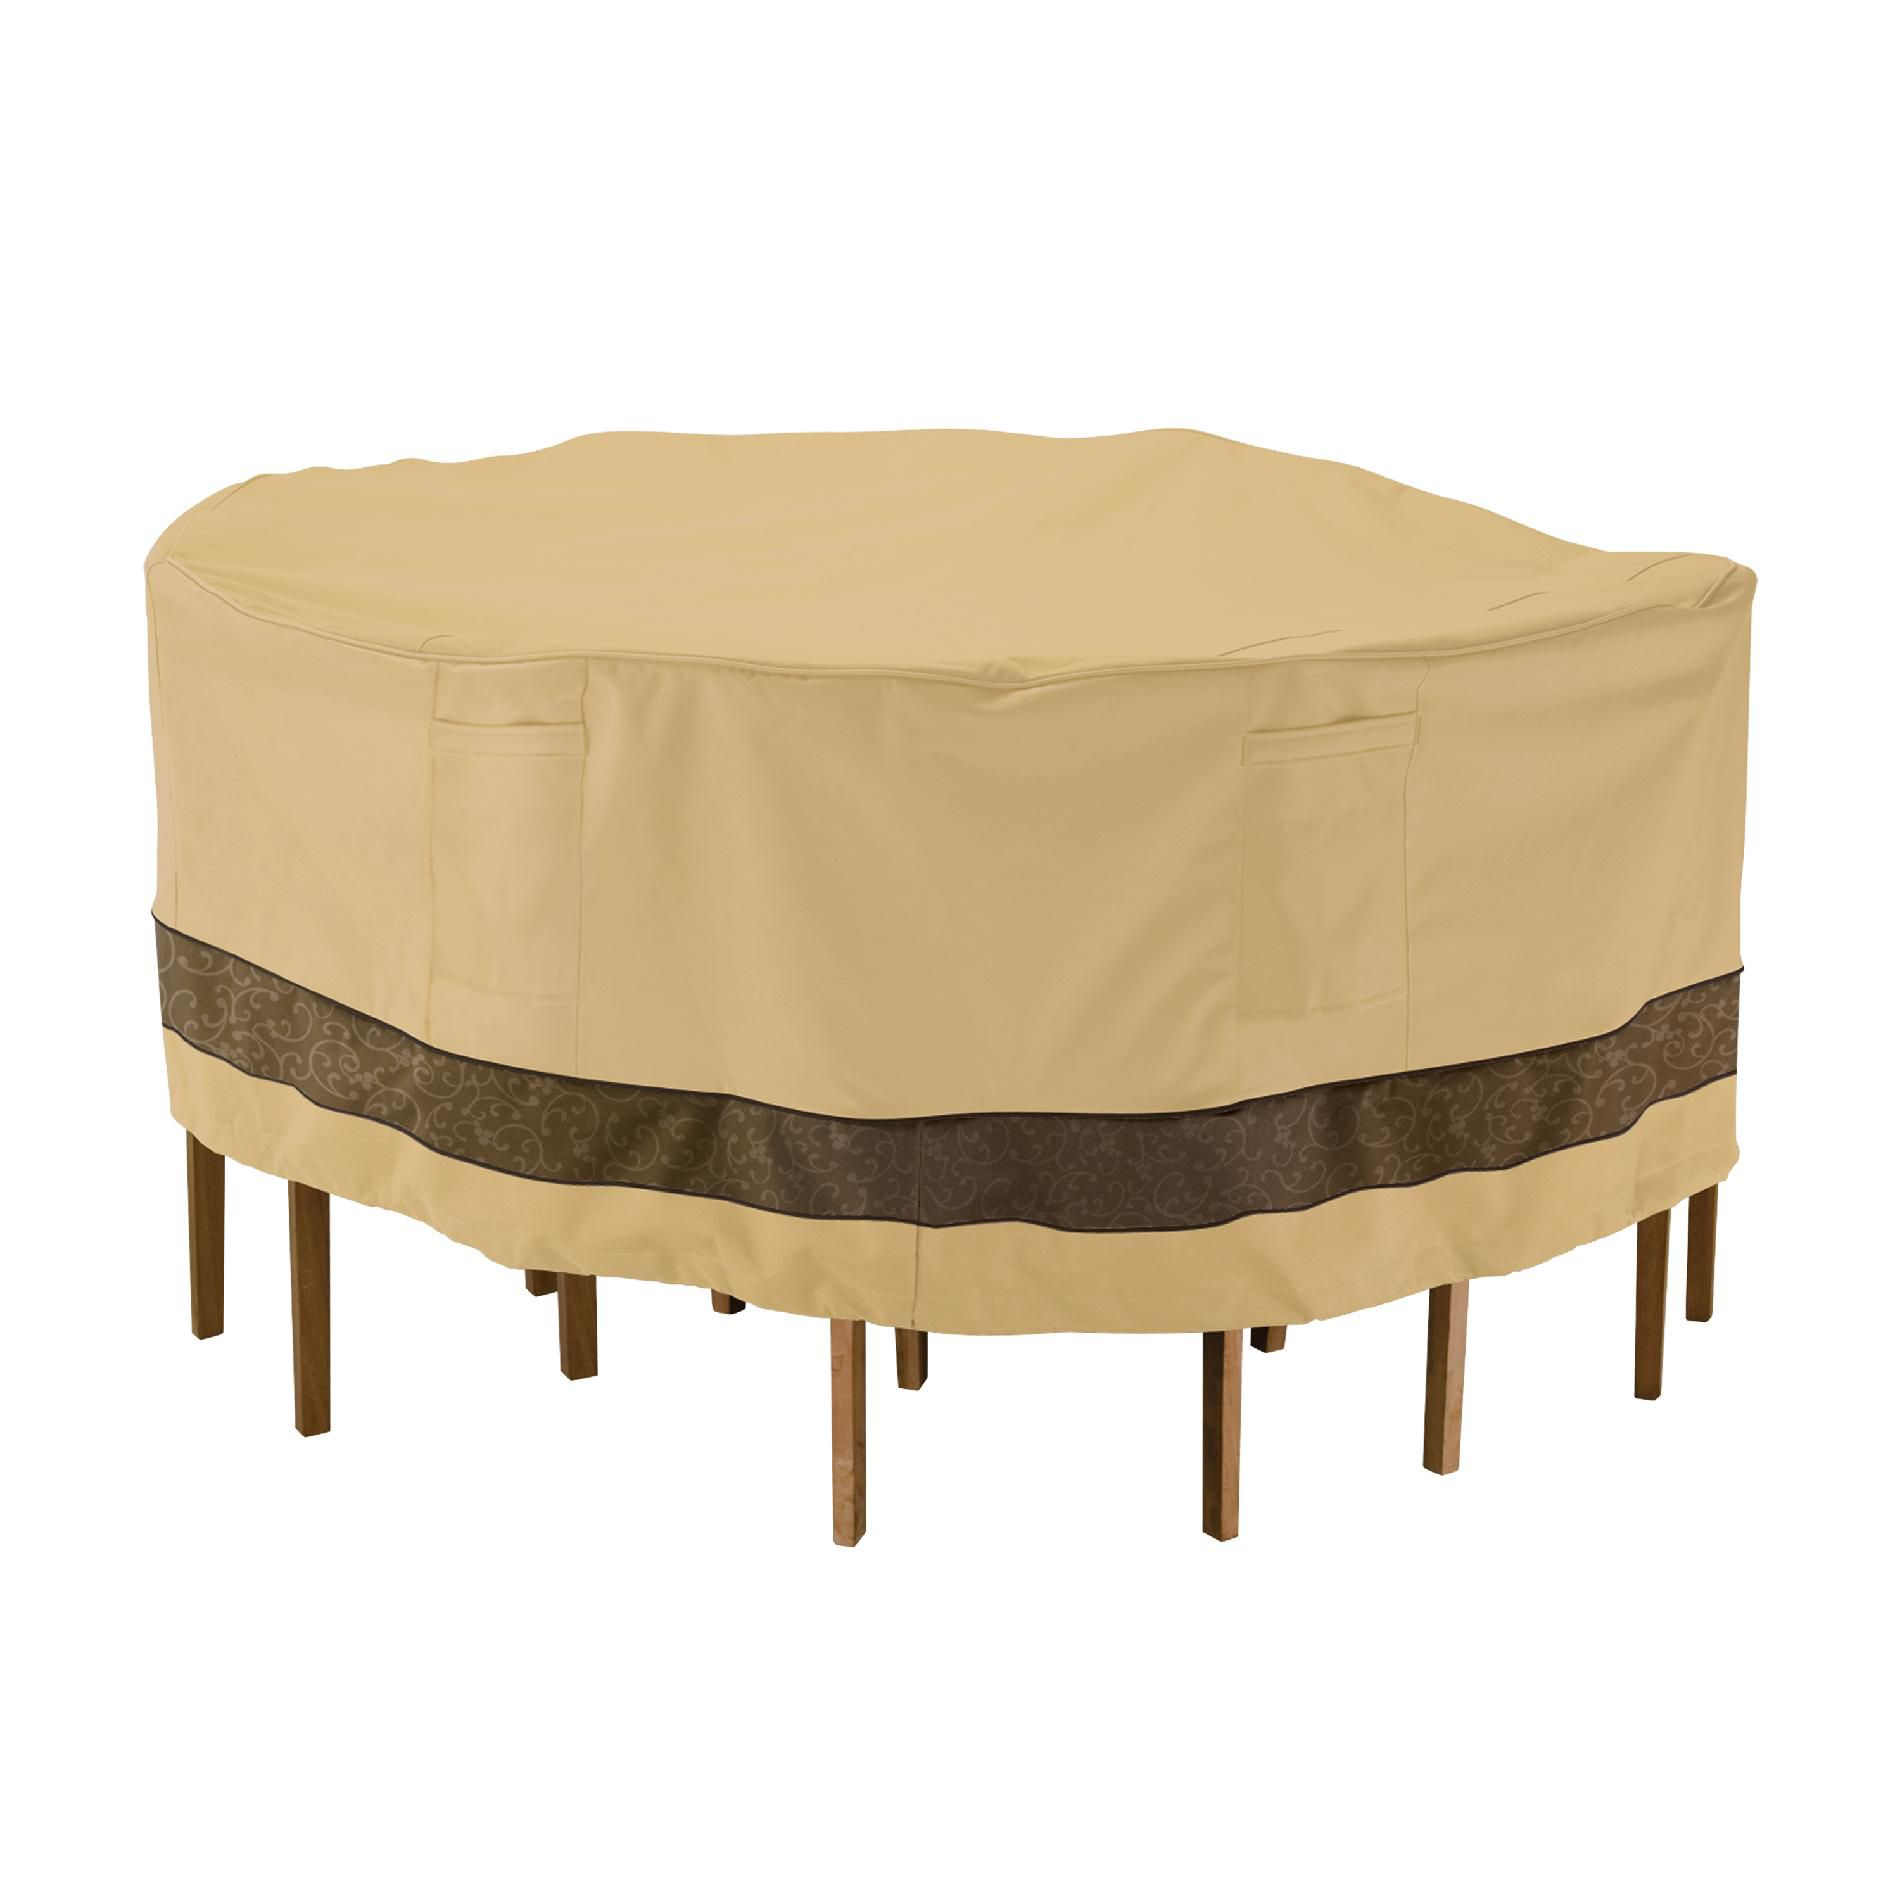 patio table and chair set cover chairs that convert to beds classic accessories veranda elite